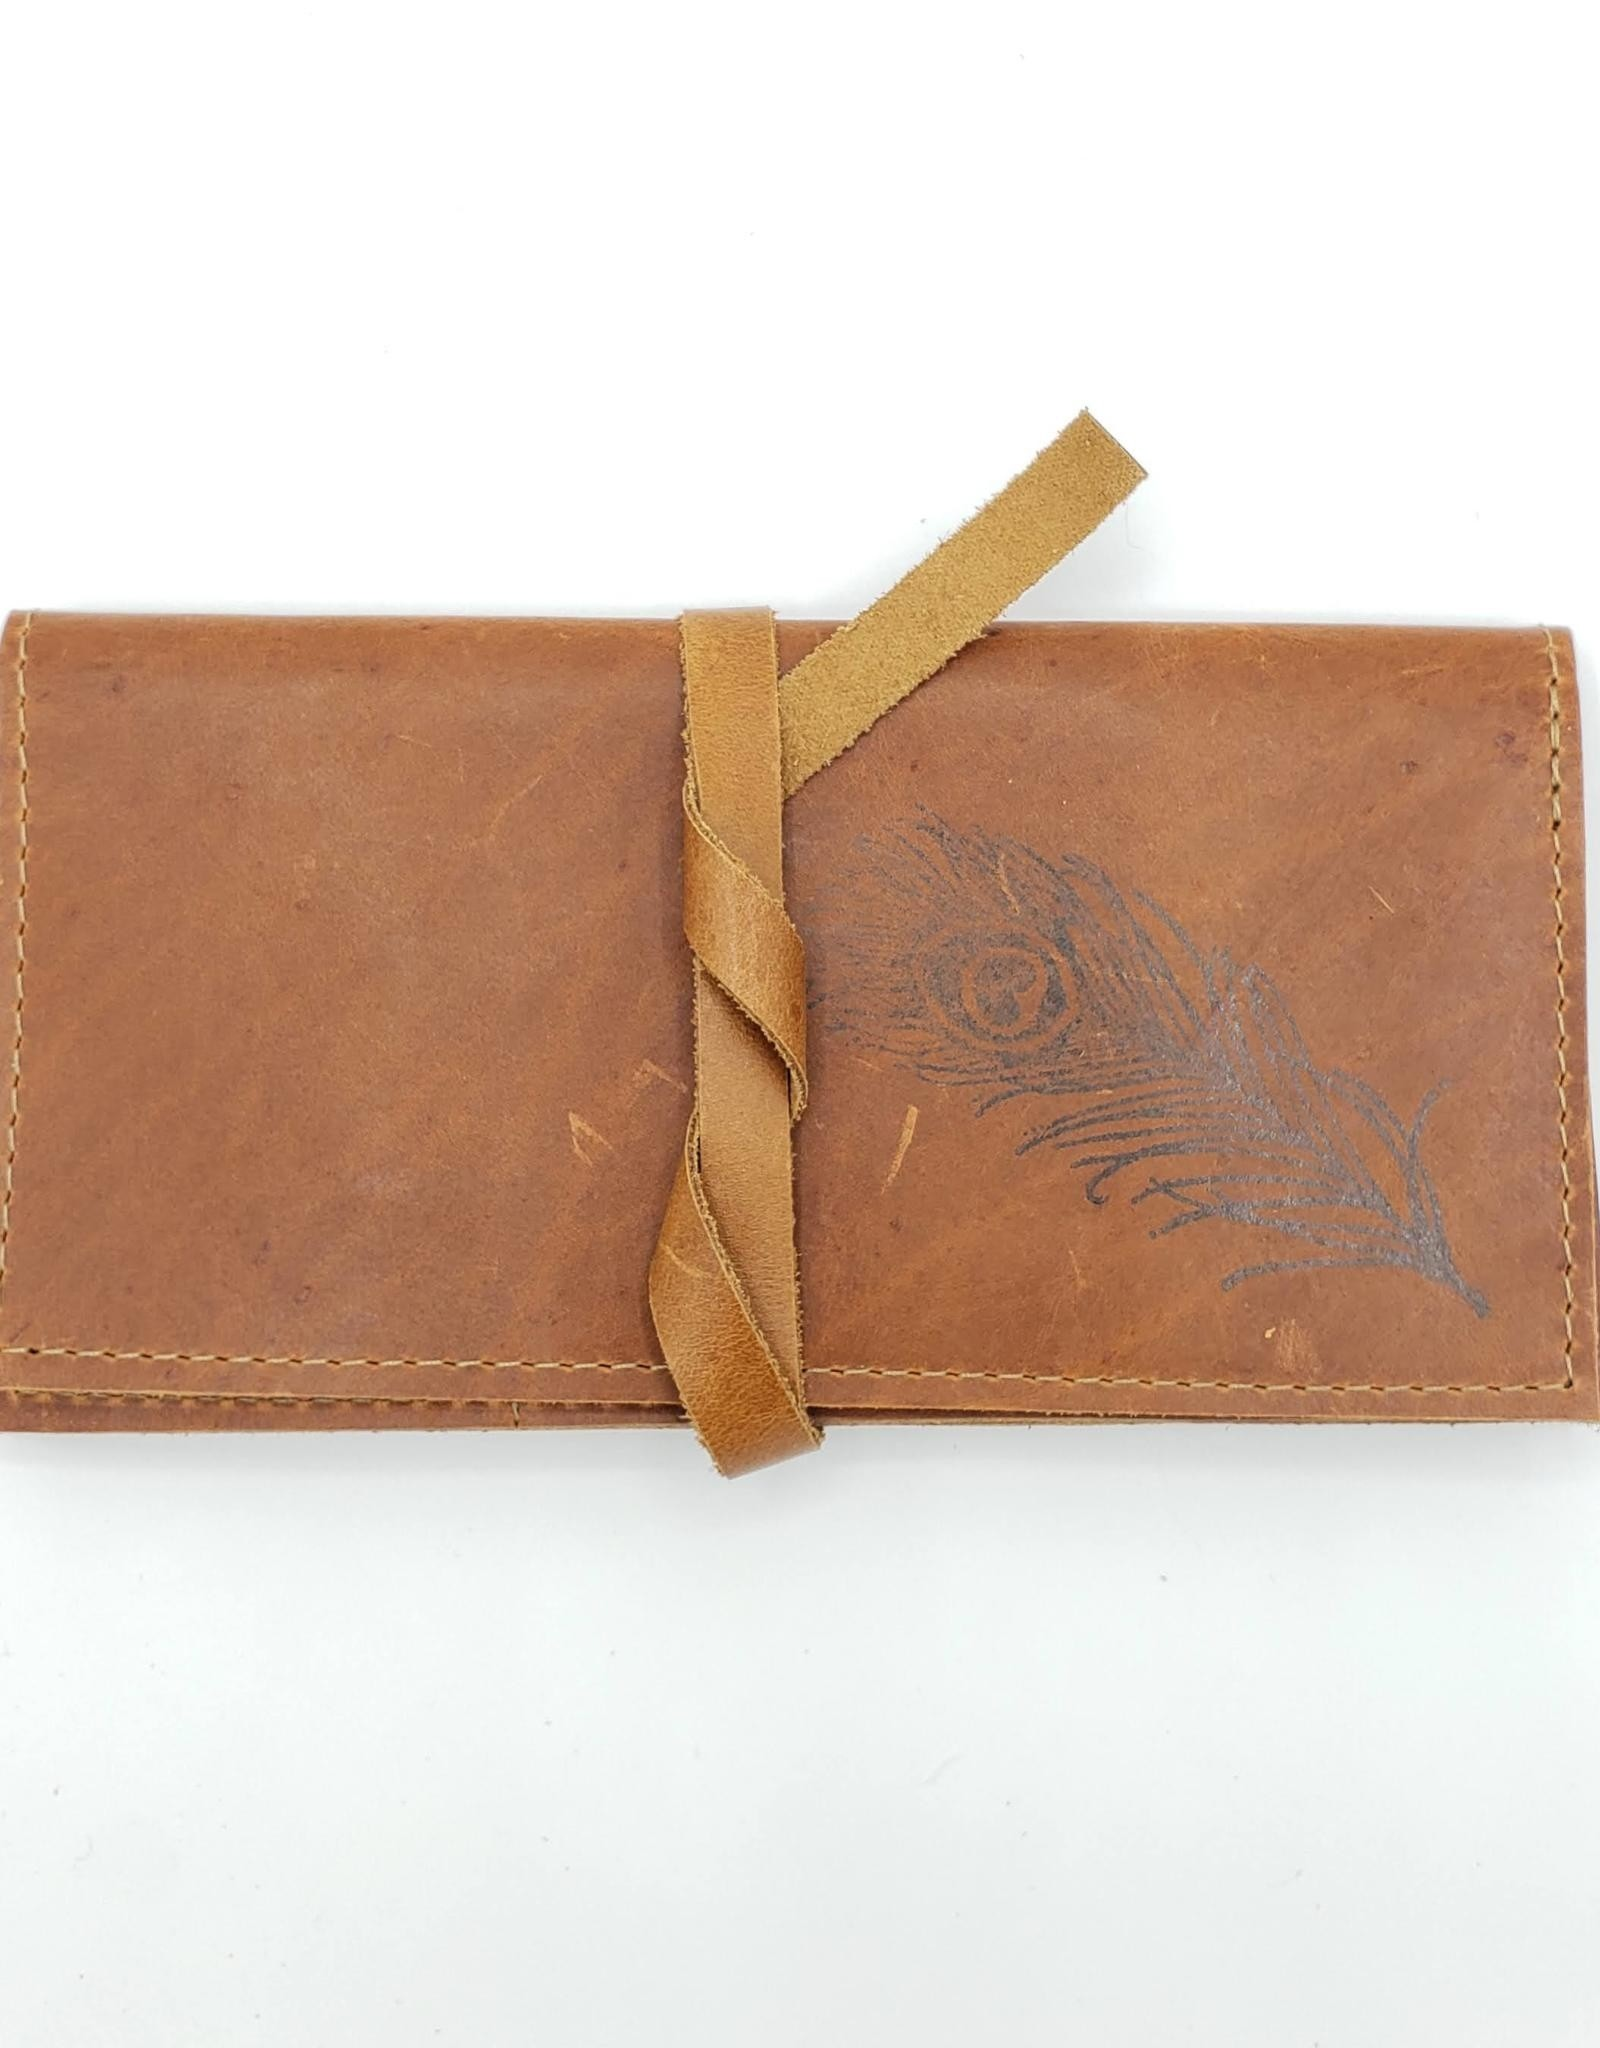 In Blue Handmade Peacock Feather - Leather Pocketbook Wallet